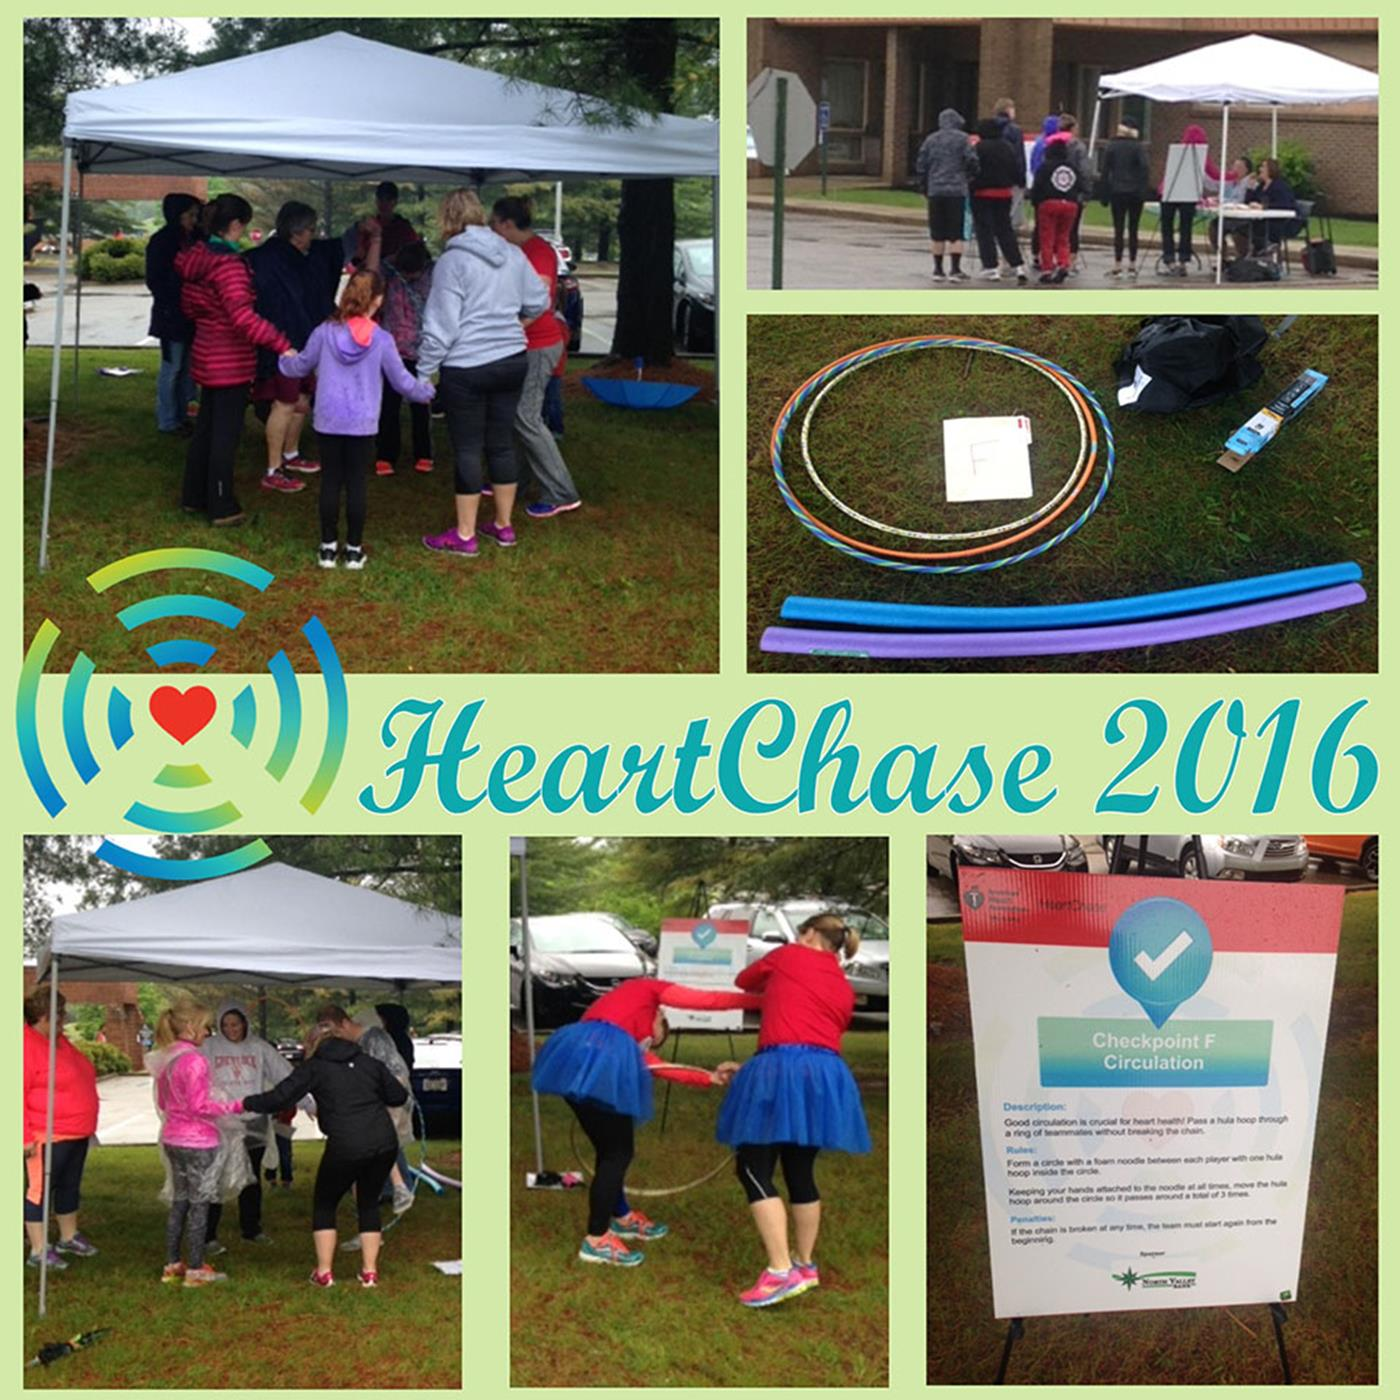 North Valley Bank Heart Chase 2016